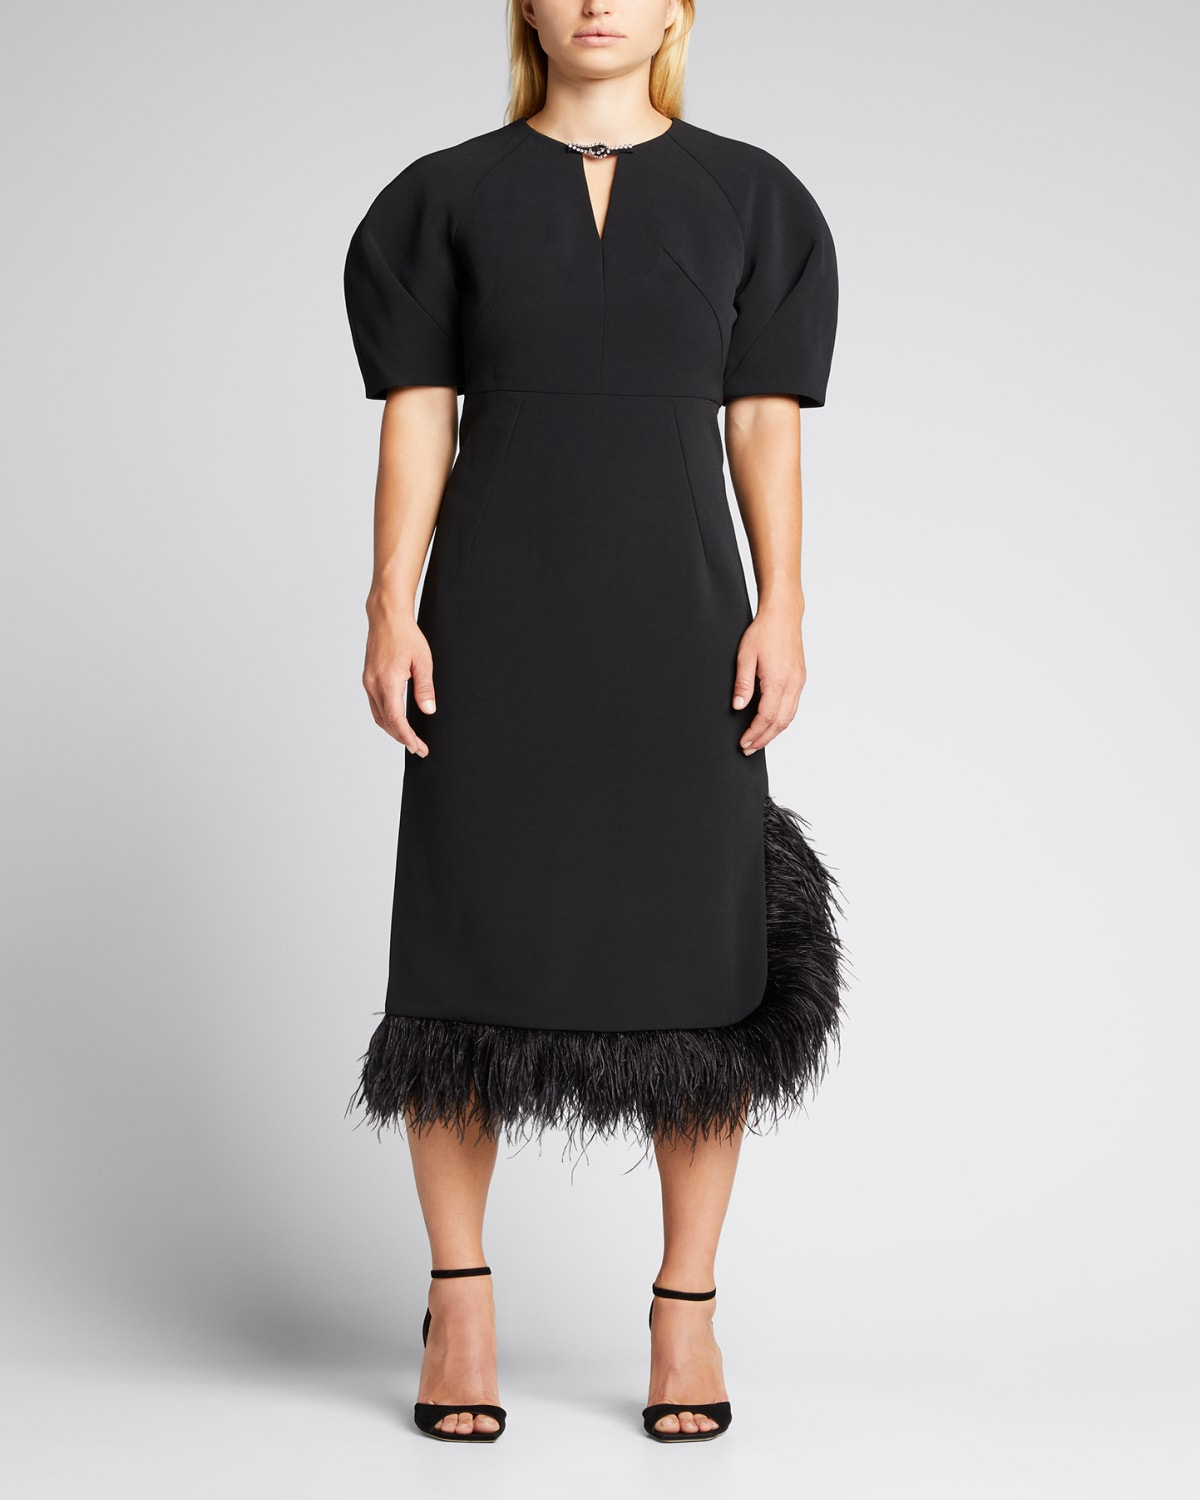 Feather-Trimmed Crepe Midi Dress